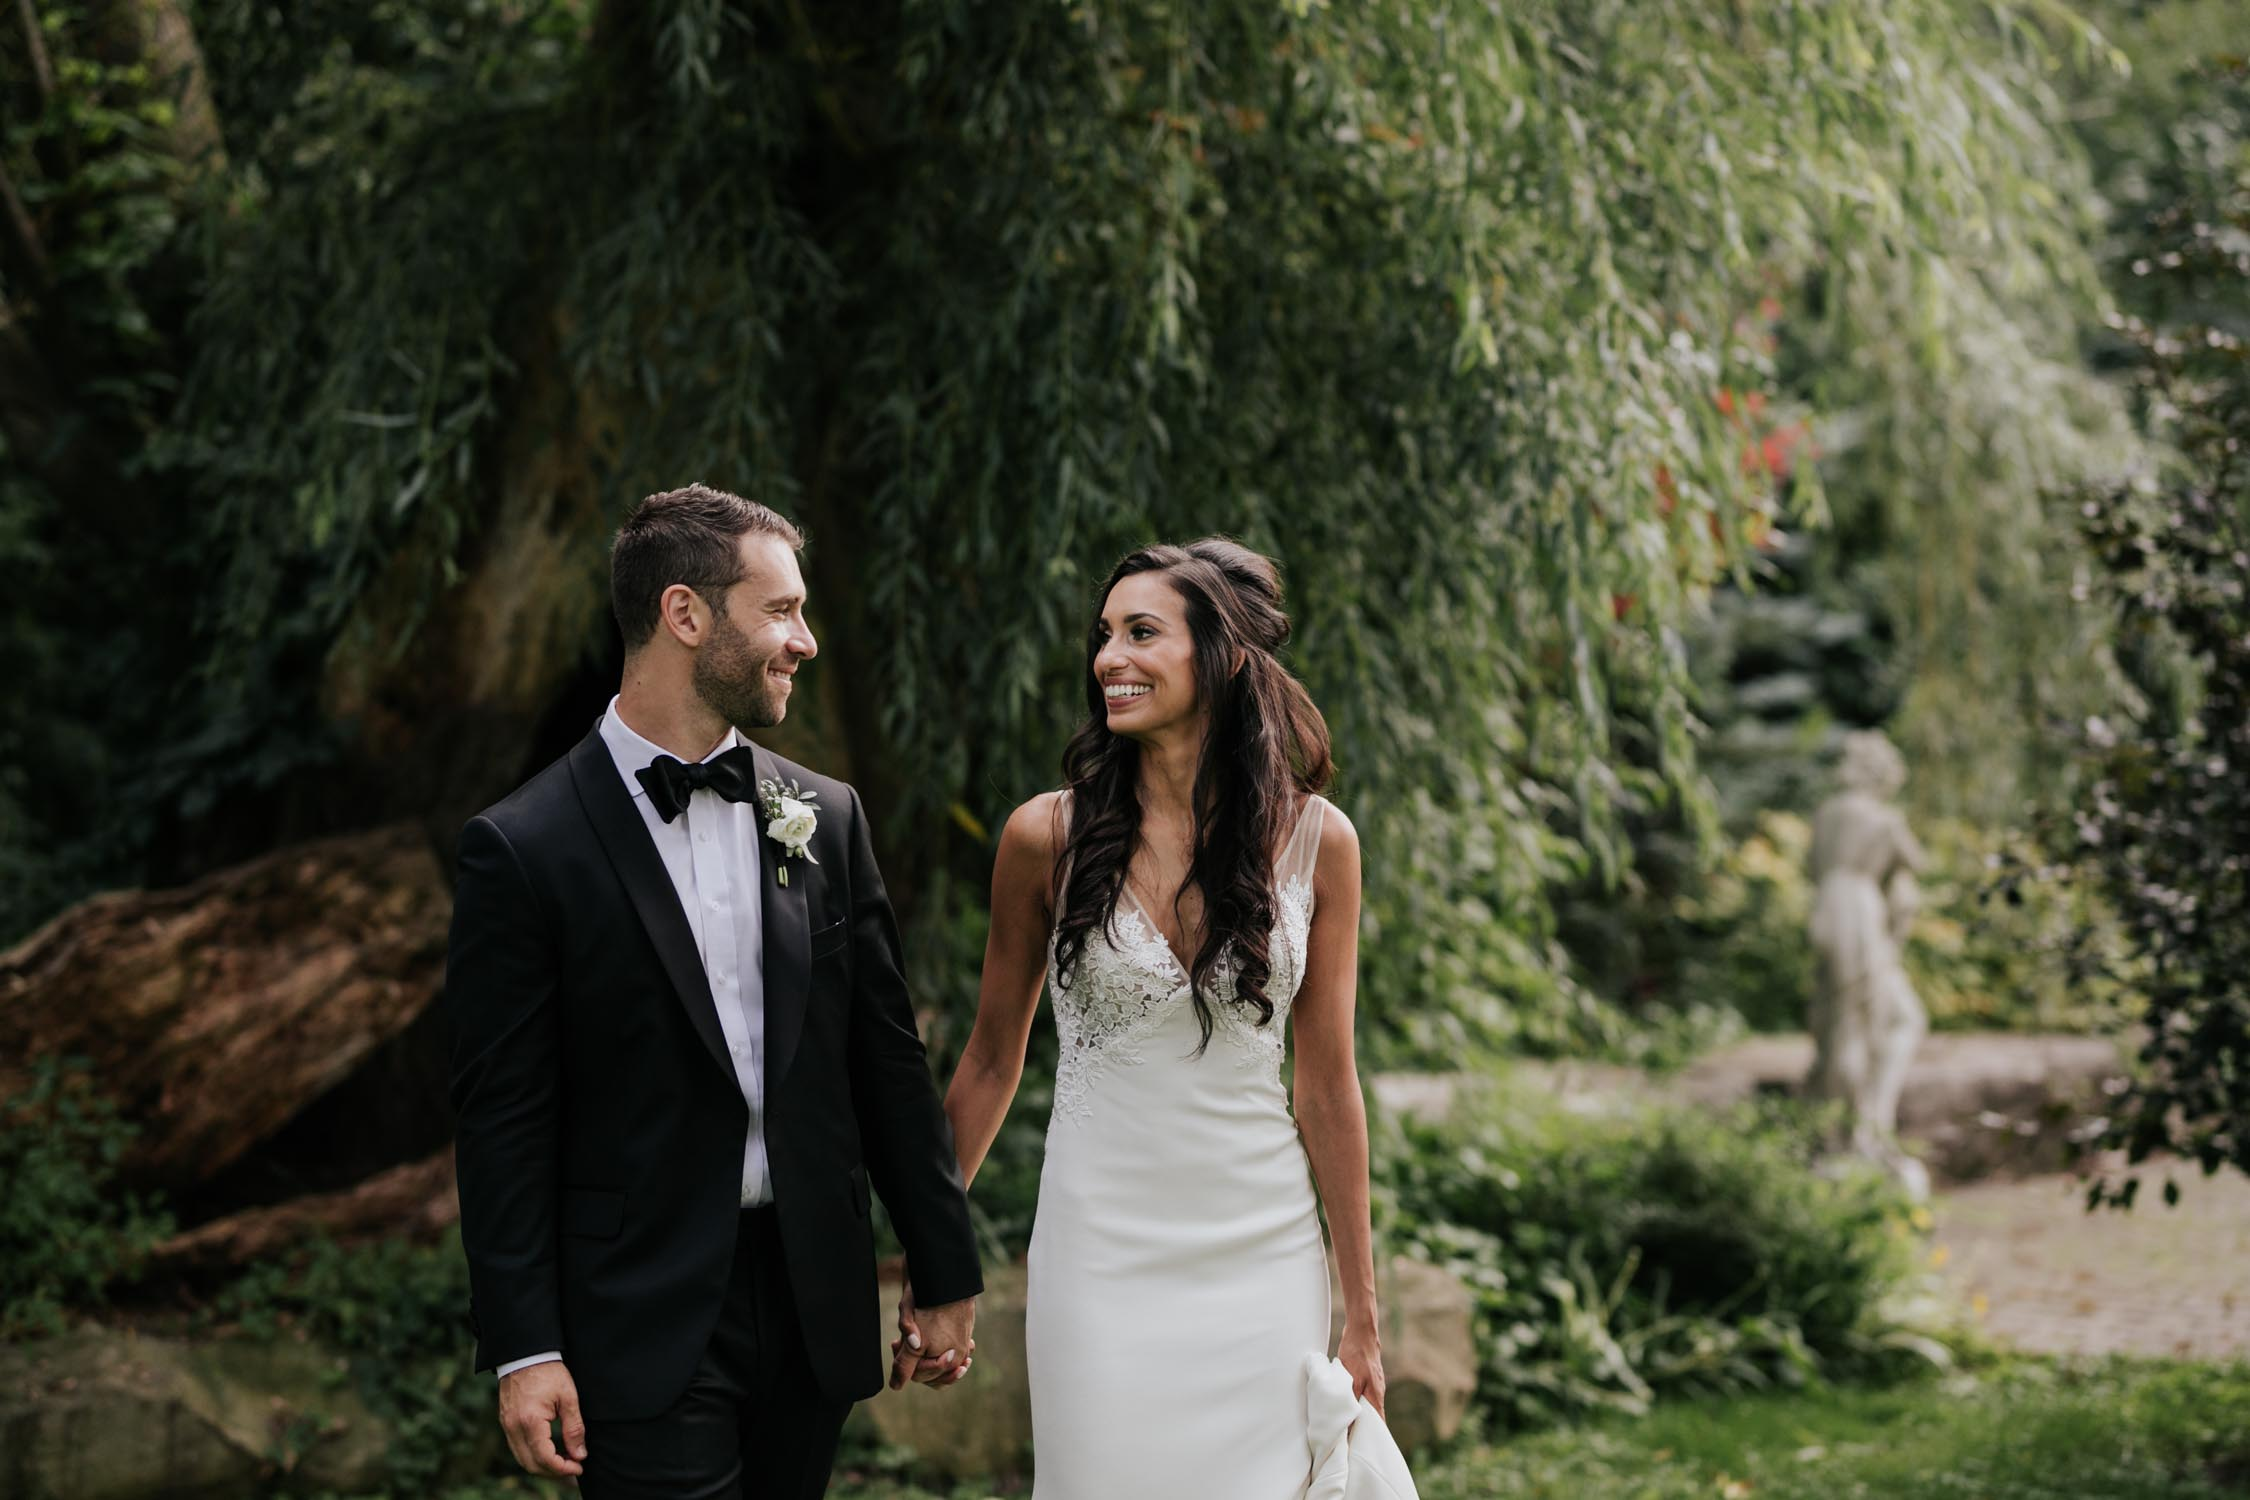 Happy and natural Vancouver wedding photographer at Madsen's Greenhouse wedding venue in Newmarket close to Toronto